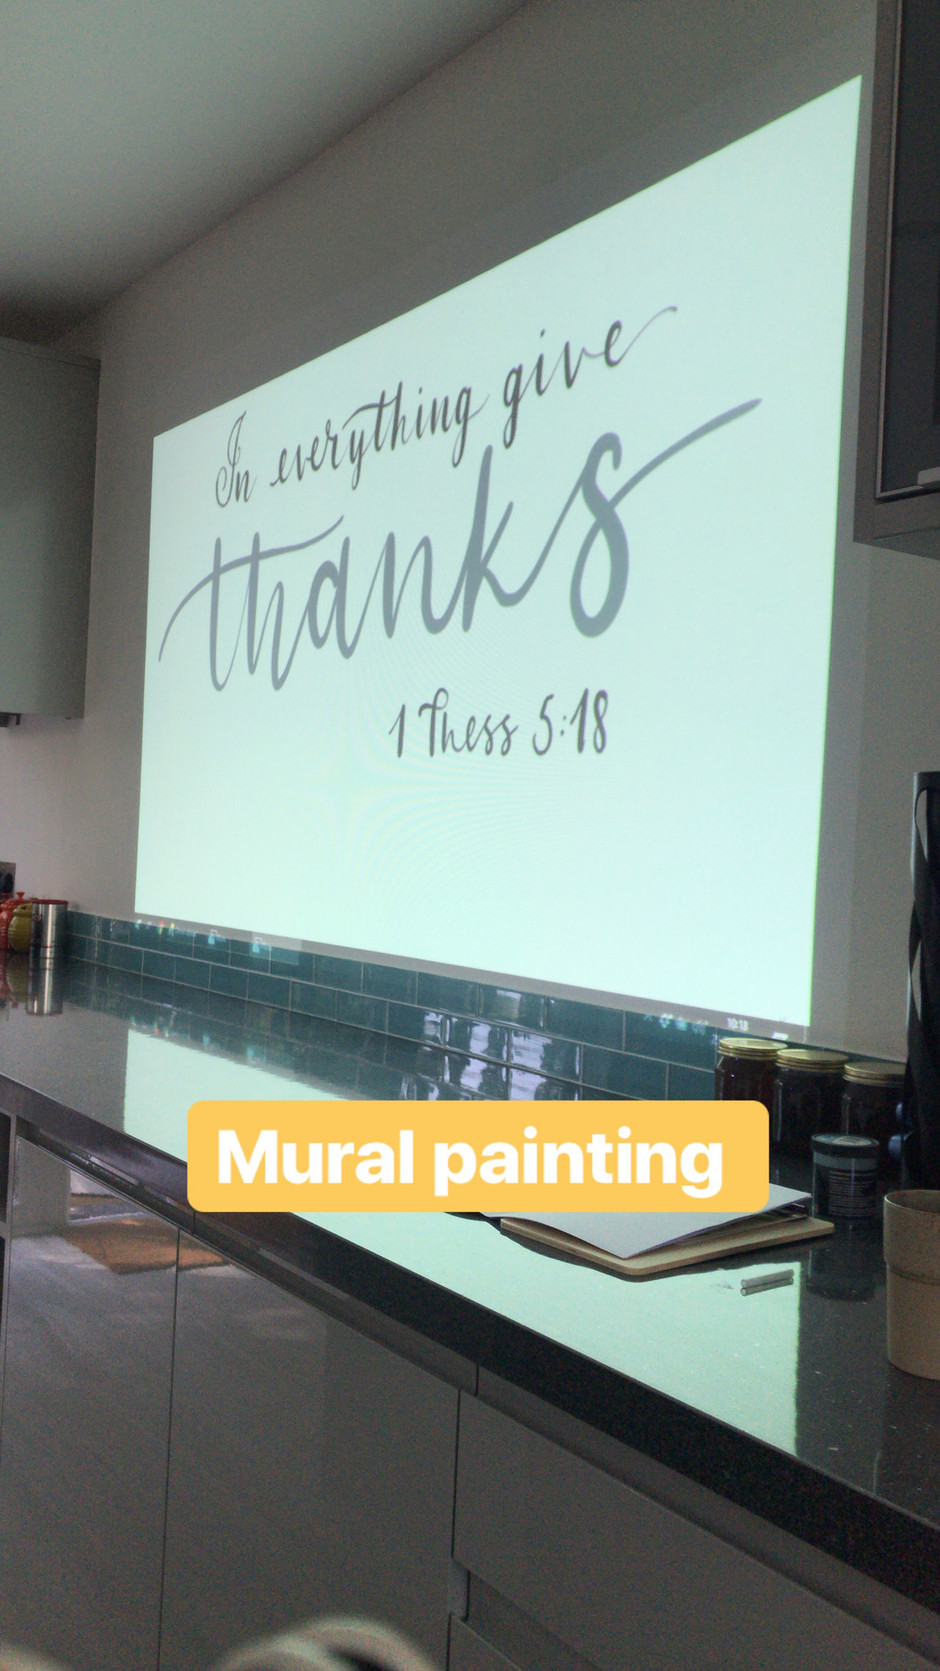 Murals and Apologies